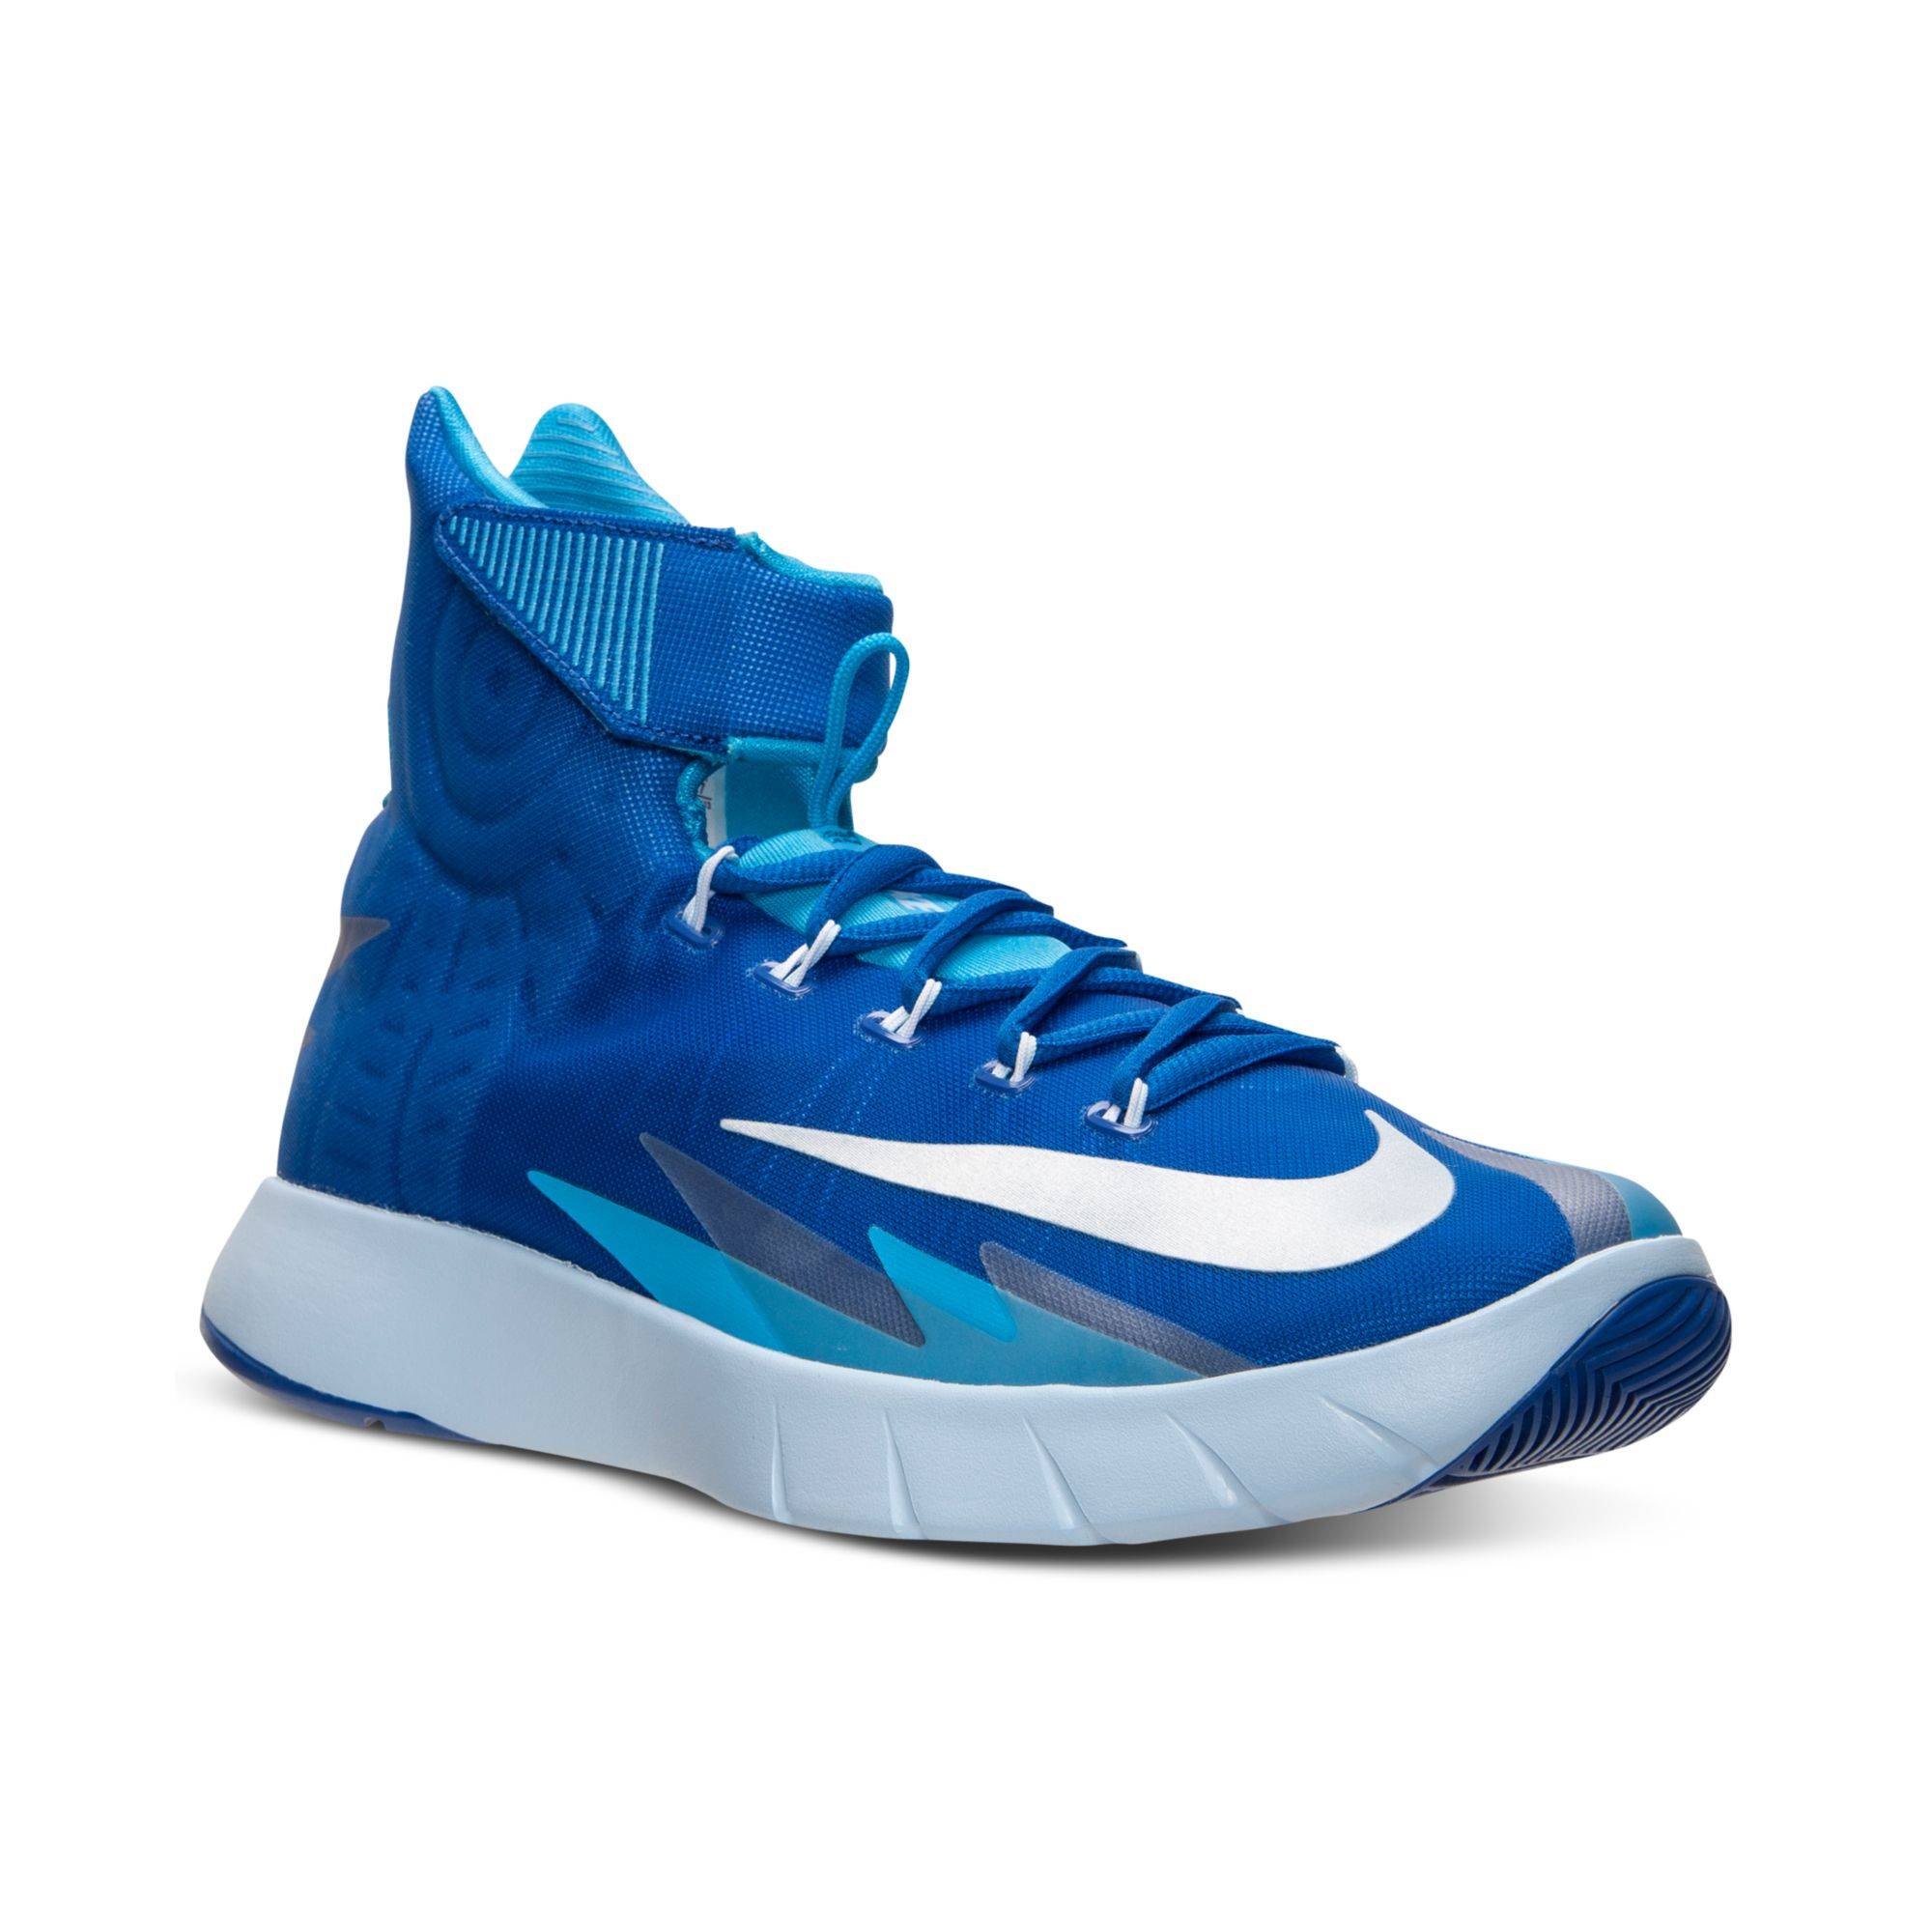 Mens Nike Basketball Shoes Finish Line